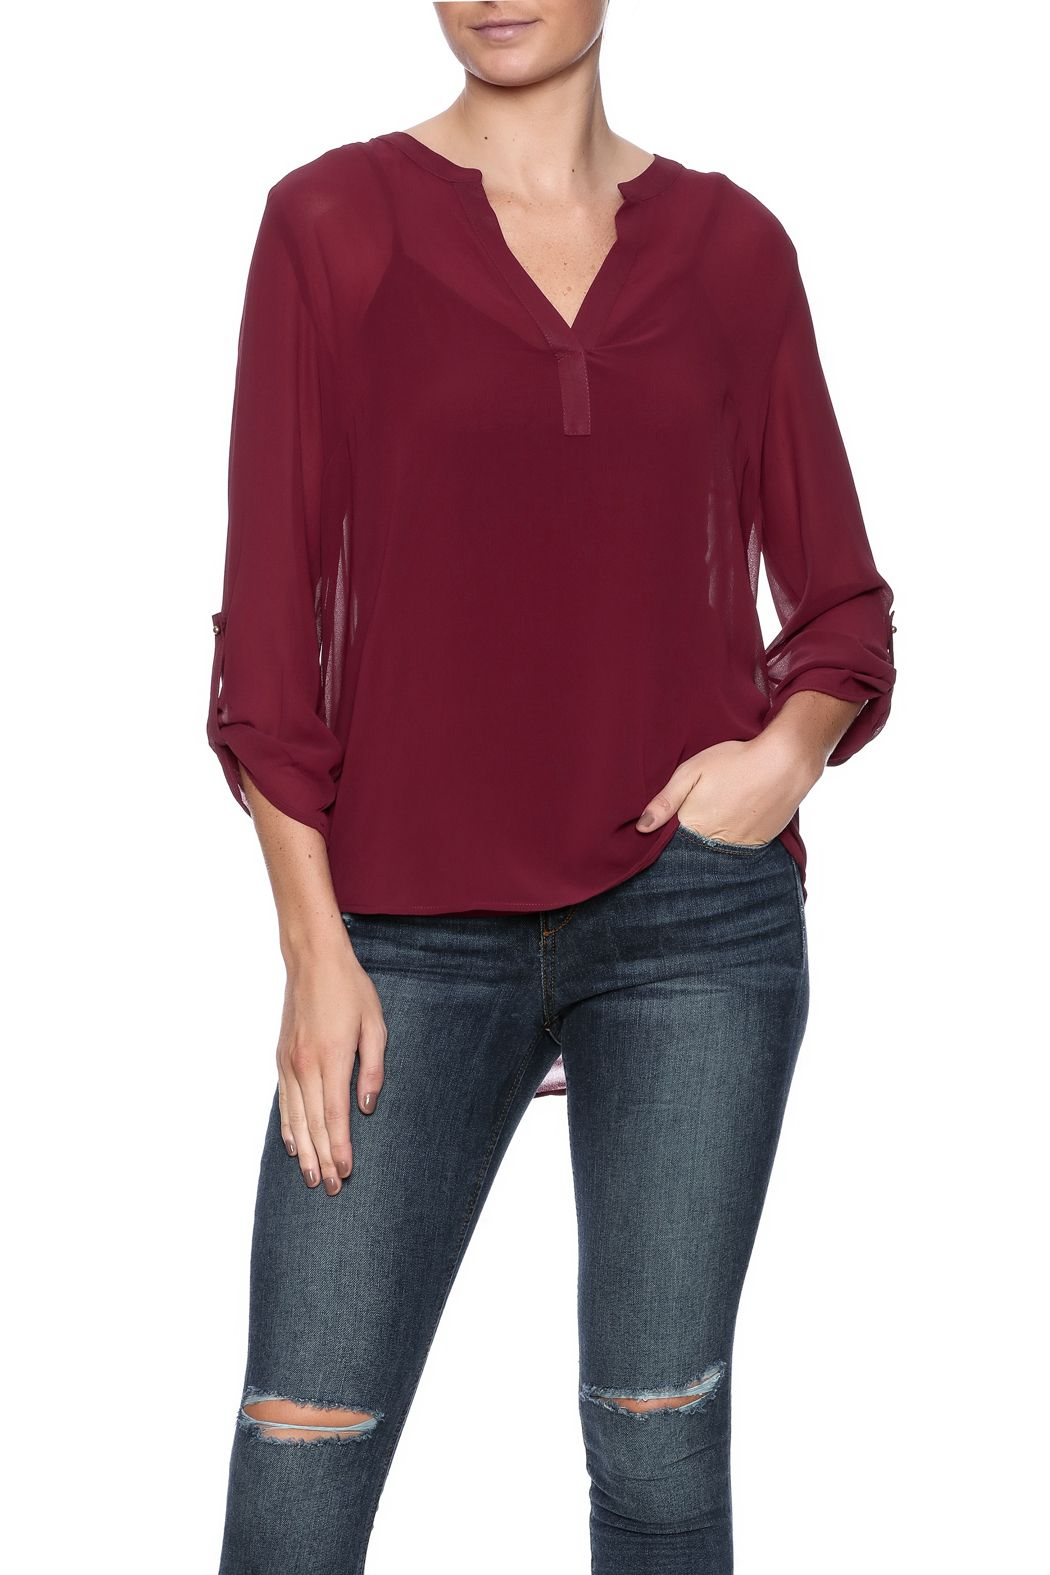 Sheer long sleeved top with cami top for lining underneath. Features a notched neckline and button tab sleeves.   Stacy Top by Daniel Rainn. Clothing - Tops - Blouses & Shirts Clothing - Tops - Long Sleeve Dallas, Texas Austin, Texas Marina, San Francisco